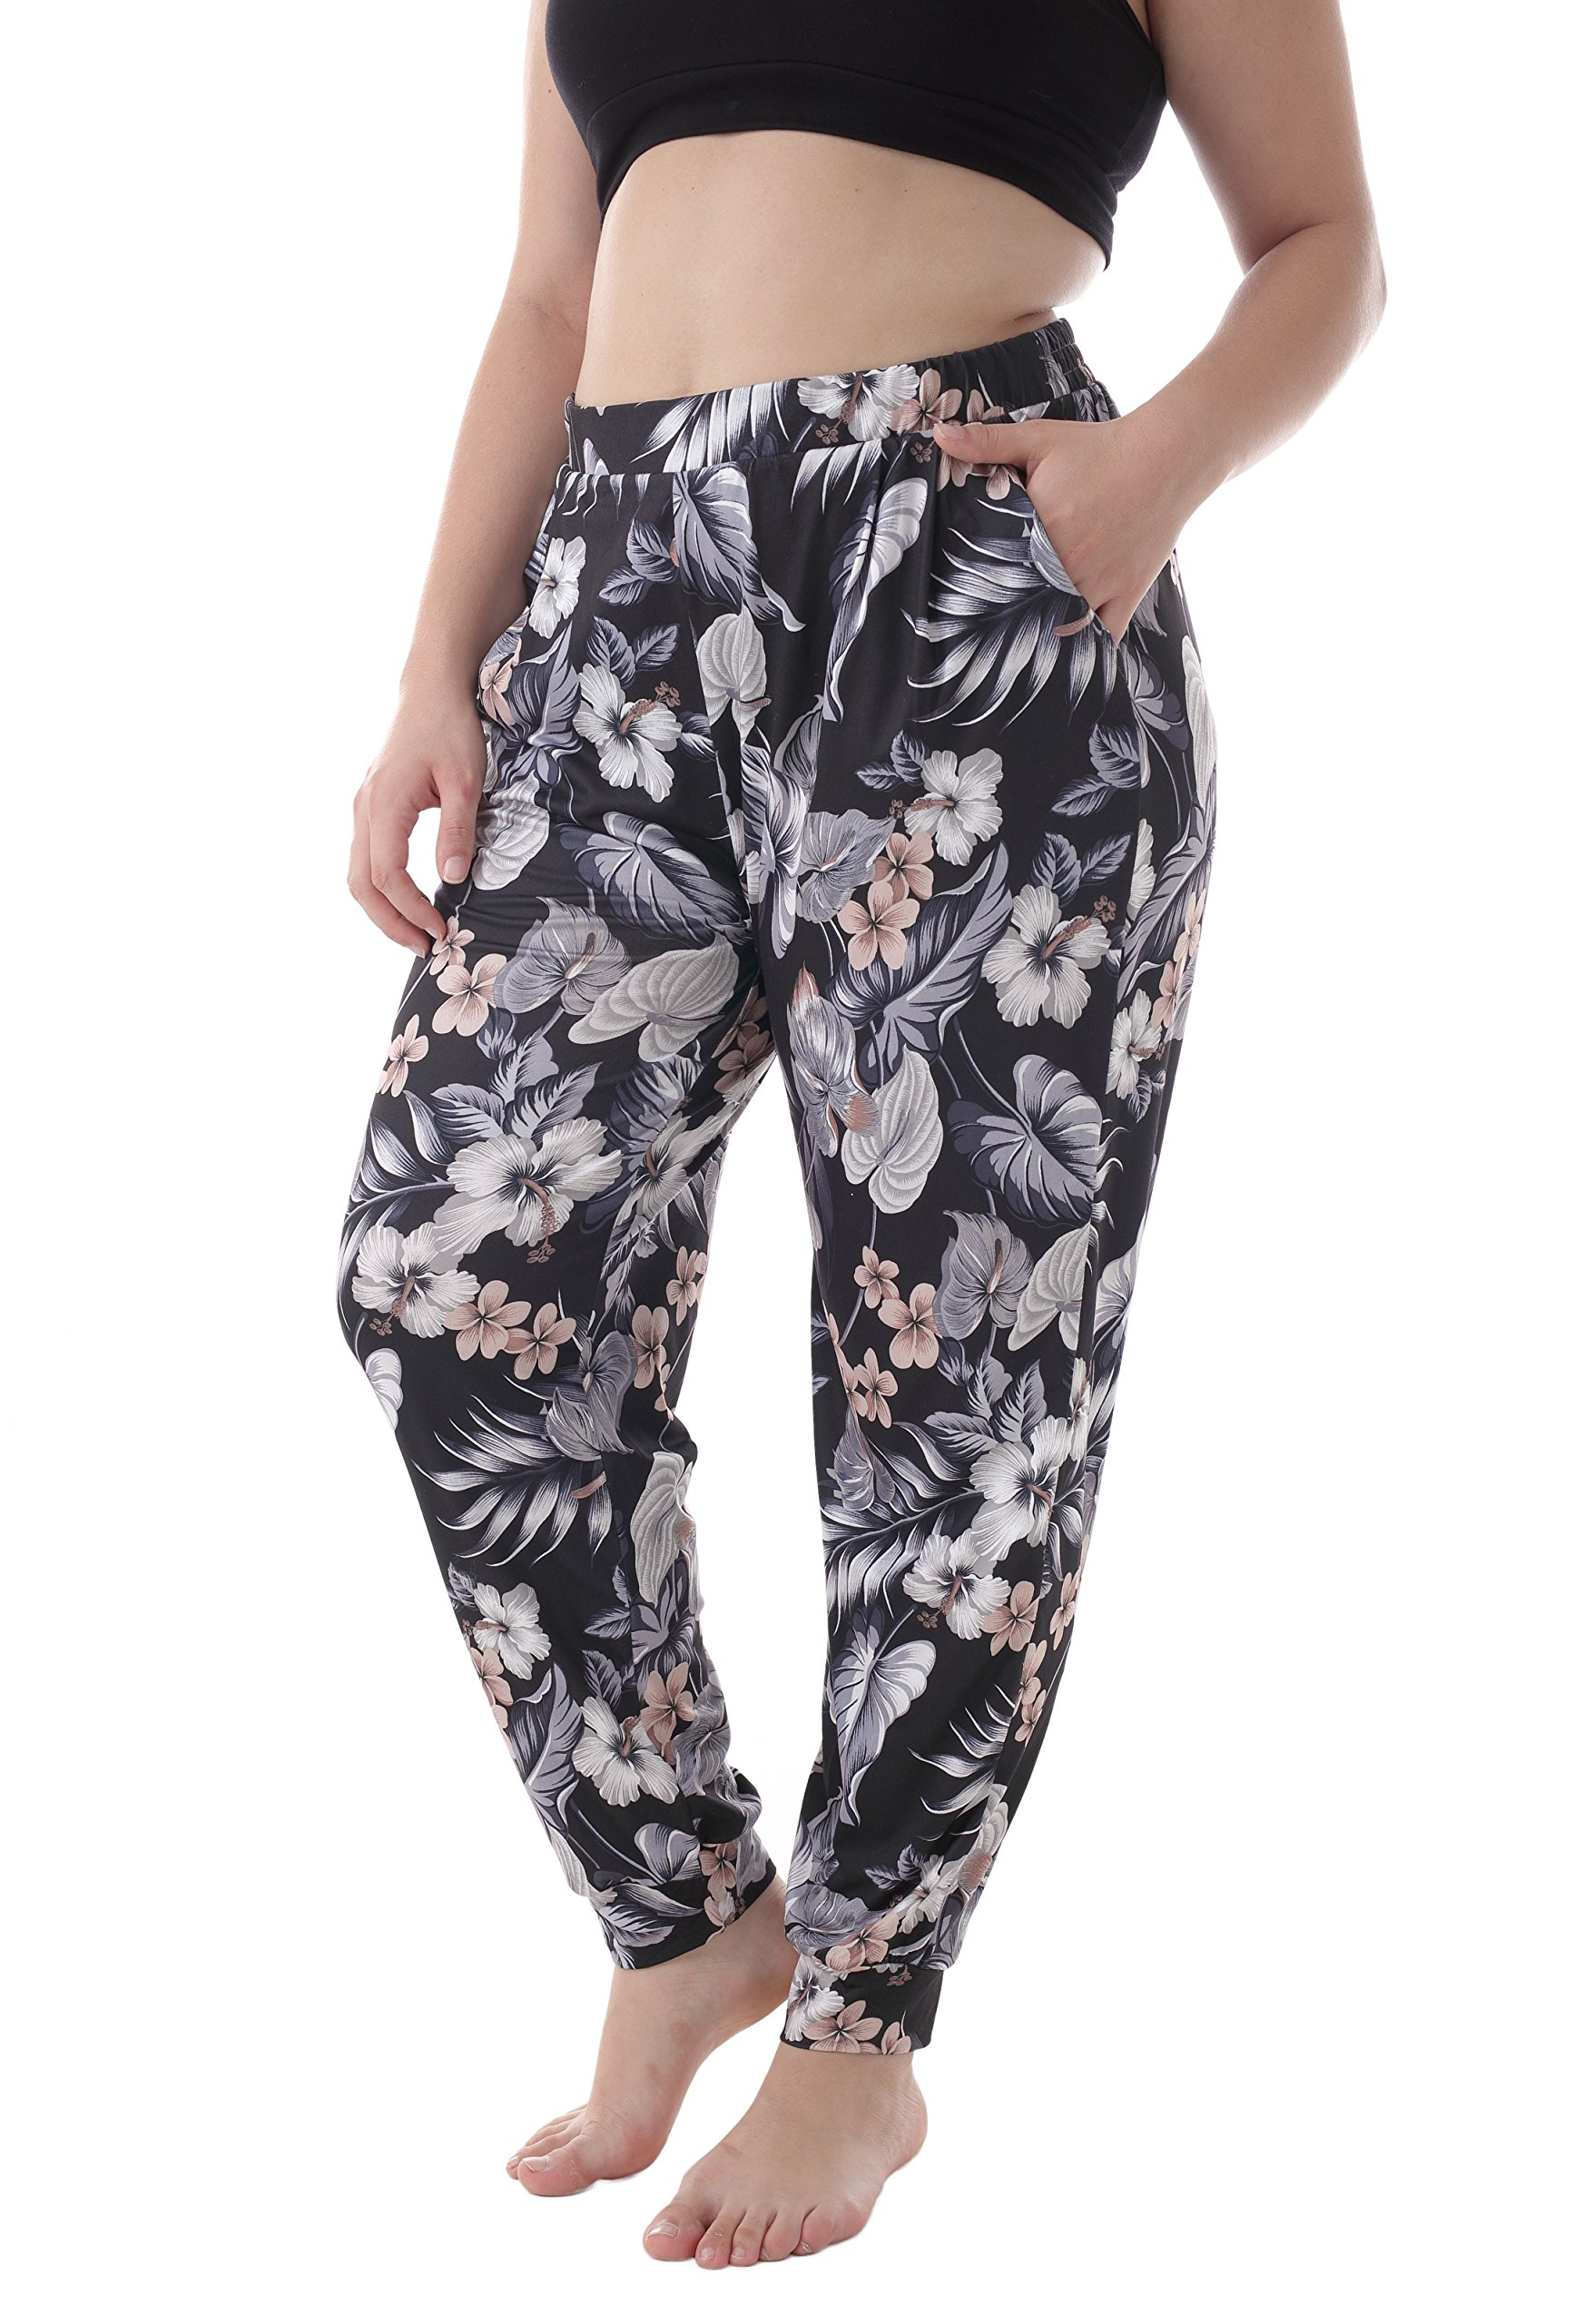 ZERDOCEAN Women's Plus Size Casual Stretchy Relaxed Long Lounge Pants with 2 Pockets 808 4X